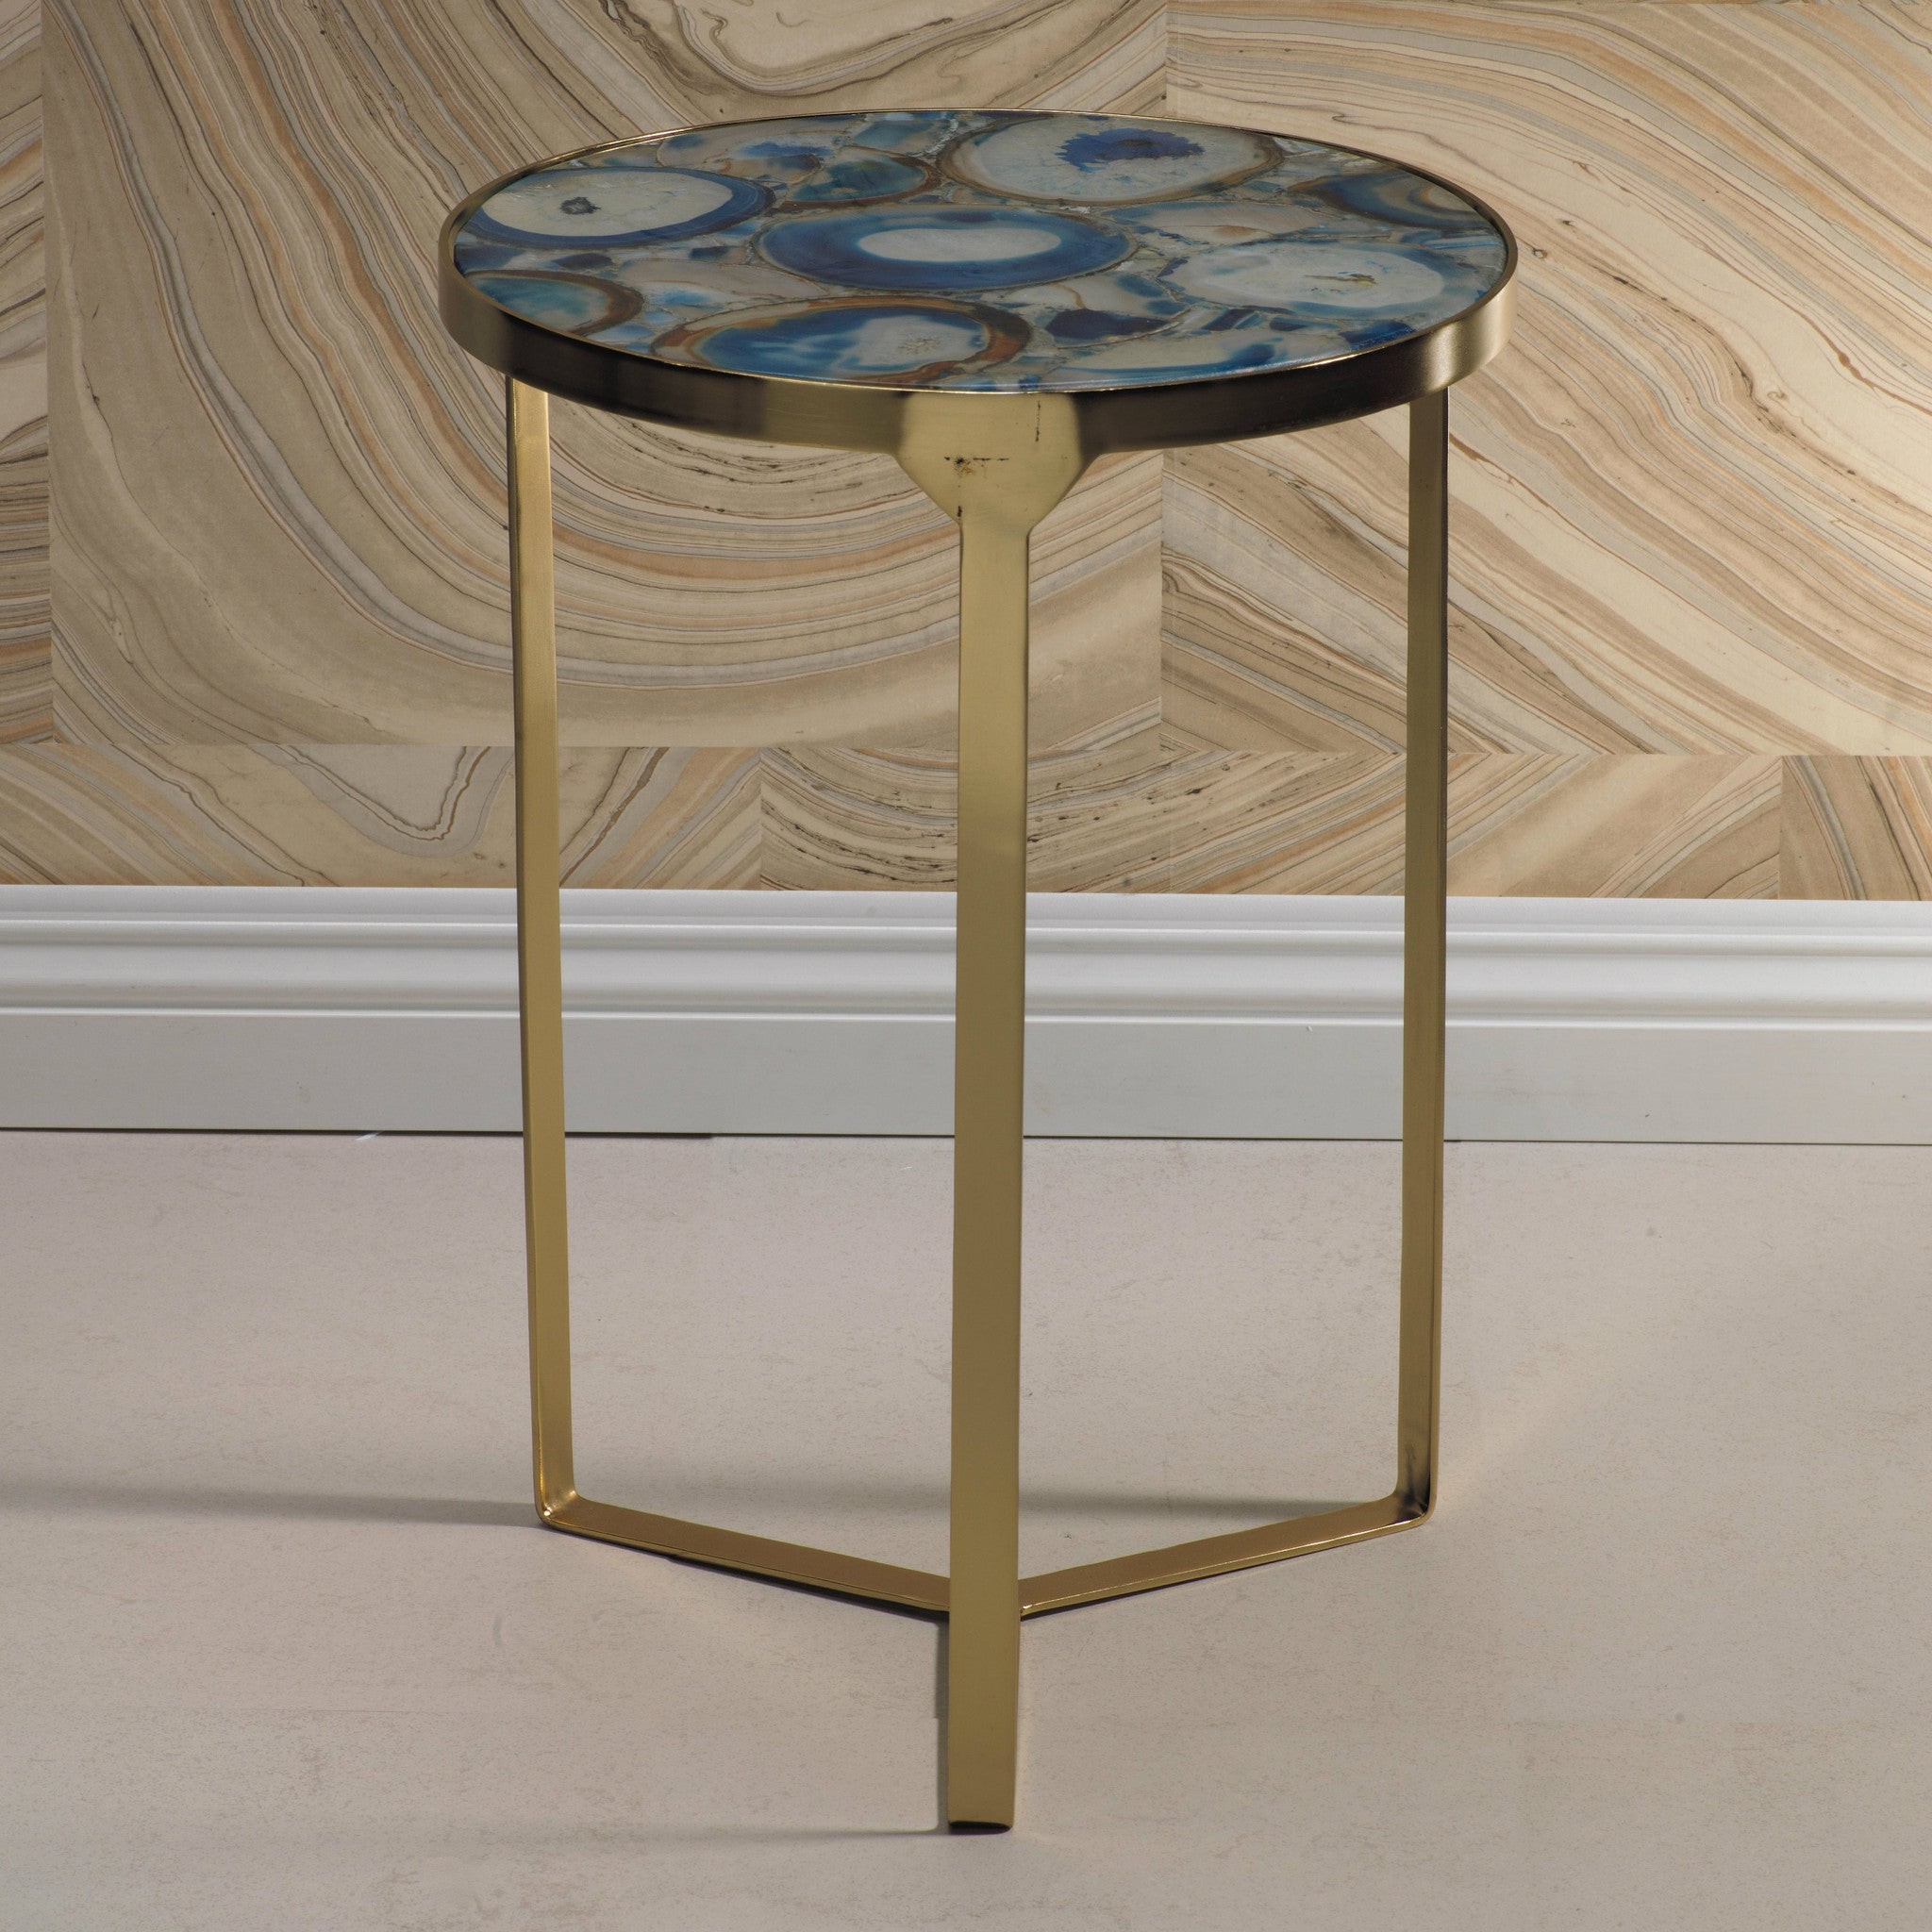 La Sardaigne Blue Agate End Table -  - CARLYLE AVENUE - 2